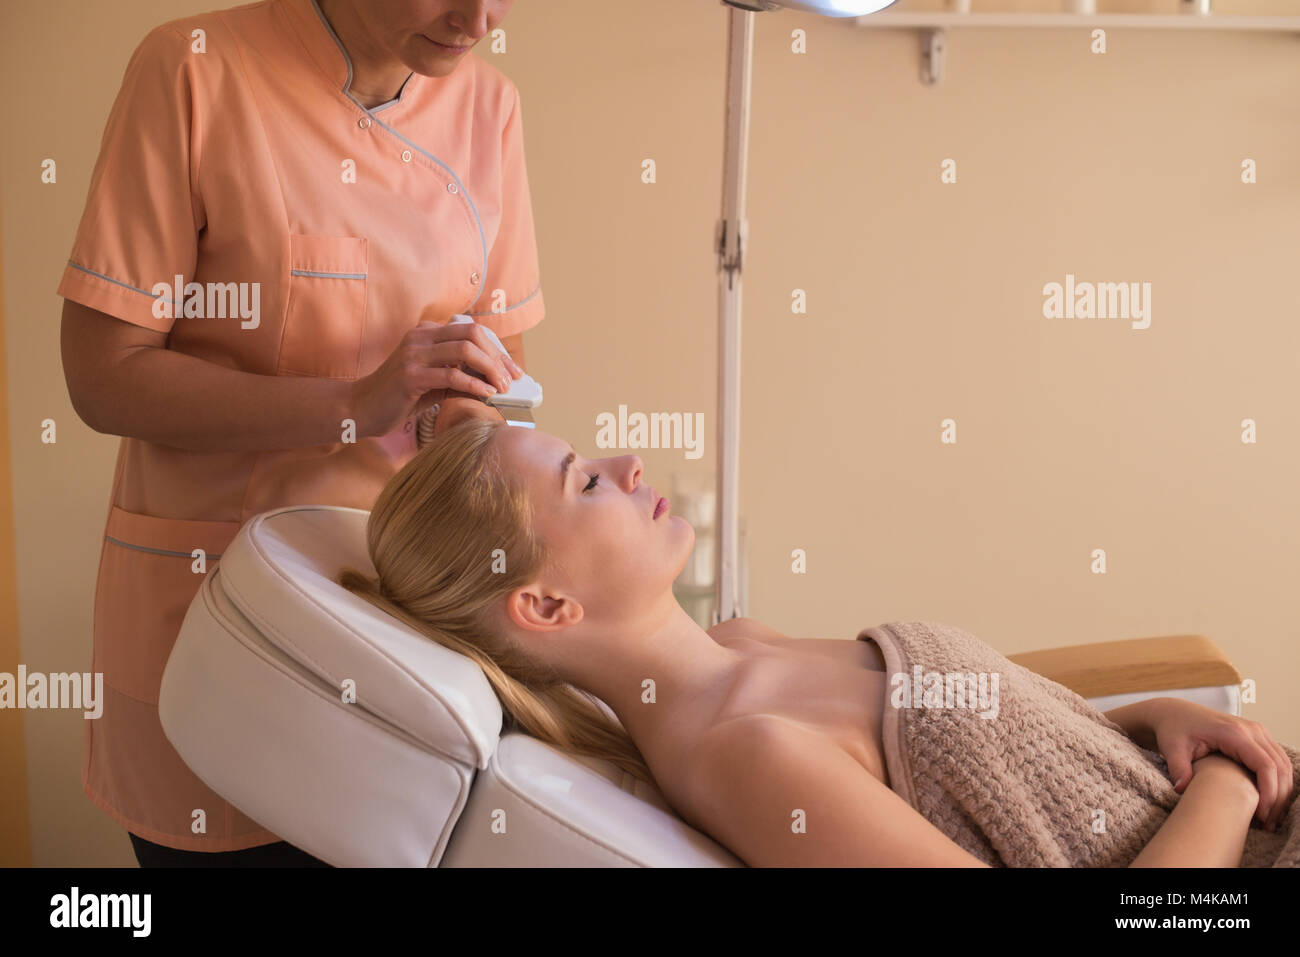 Beautician using ultrasonic scrubber on female customer - Stock Image